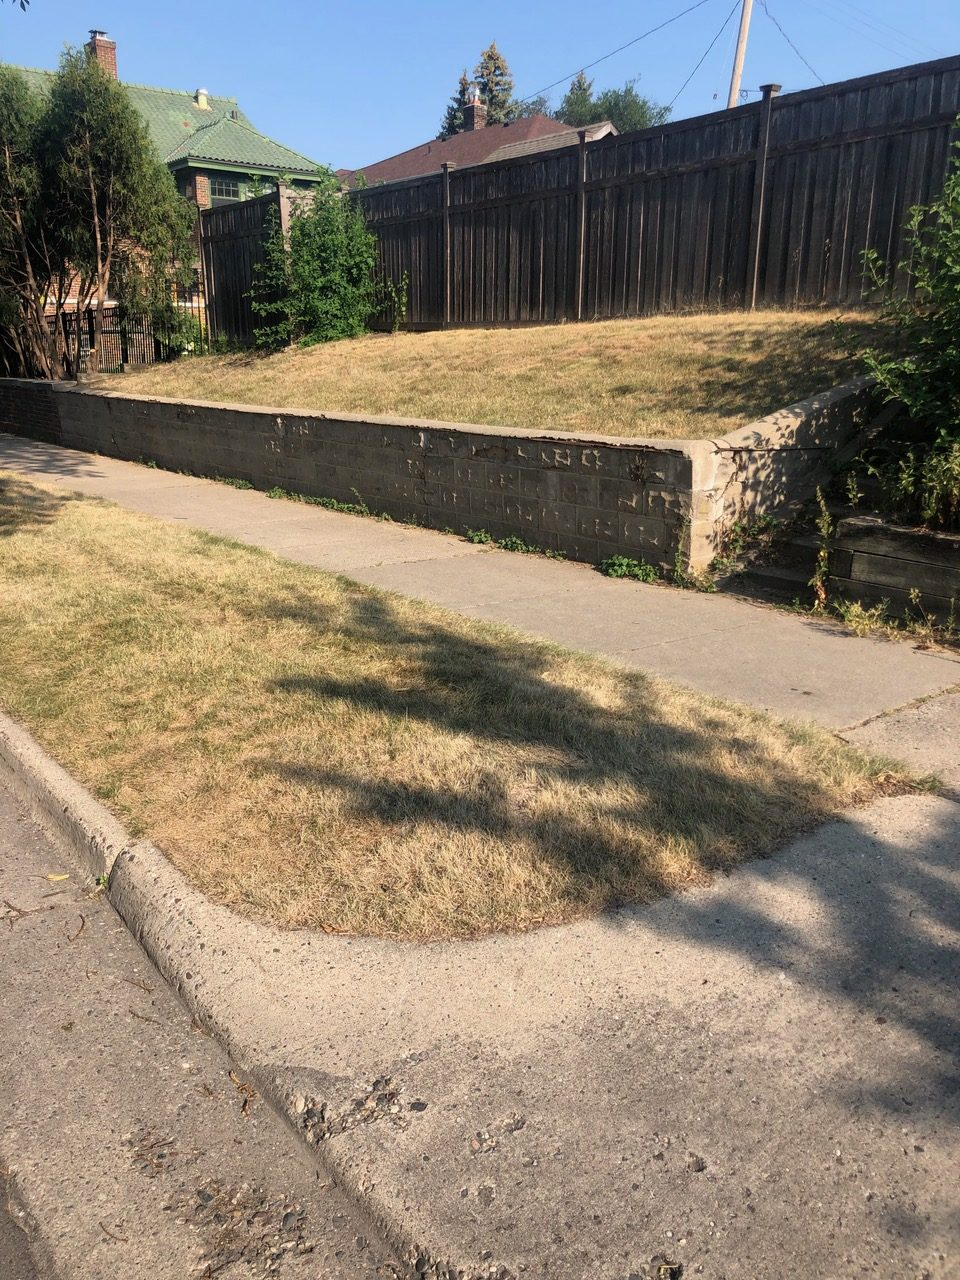 Dead Lawn, What to Do?